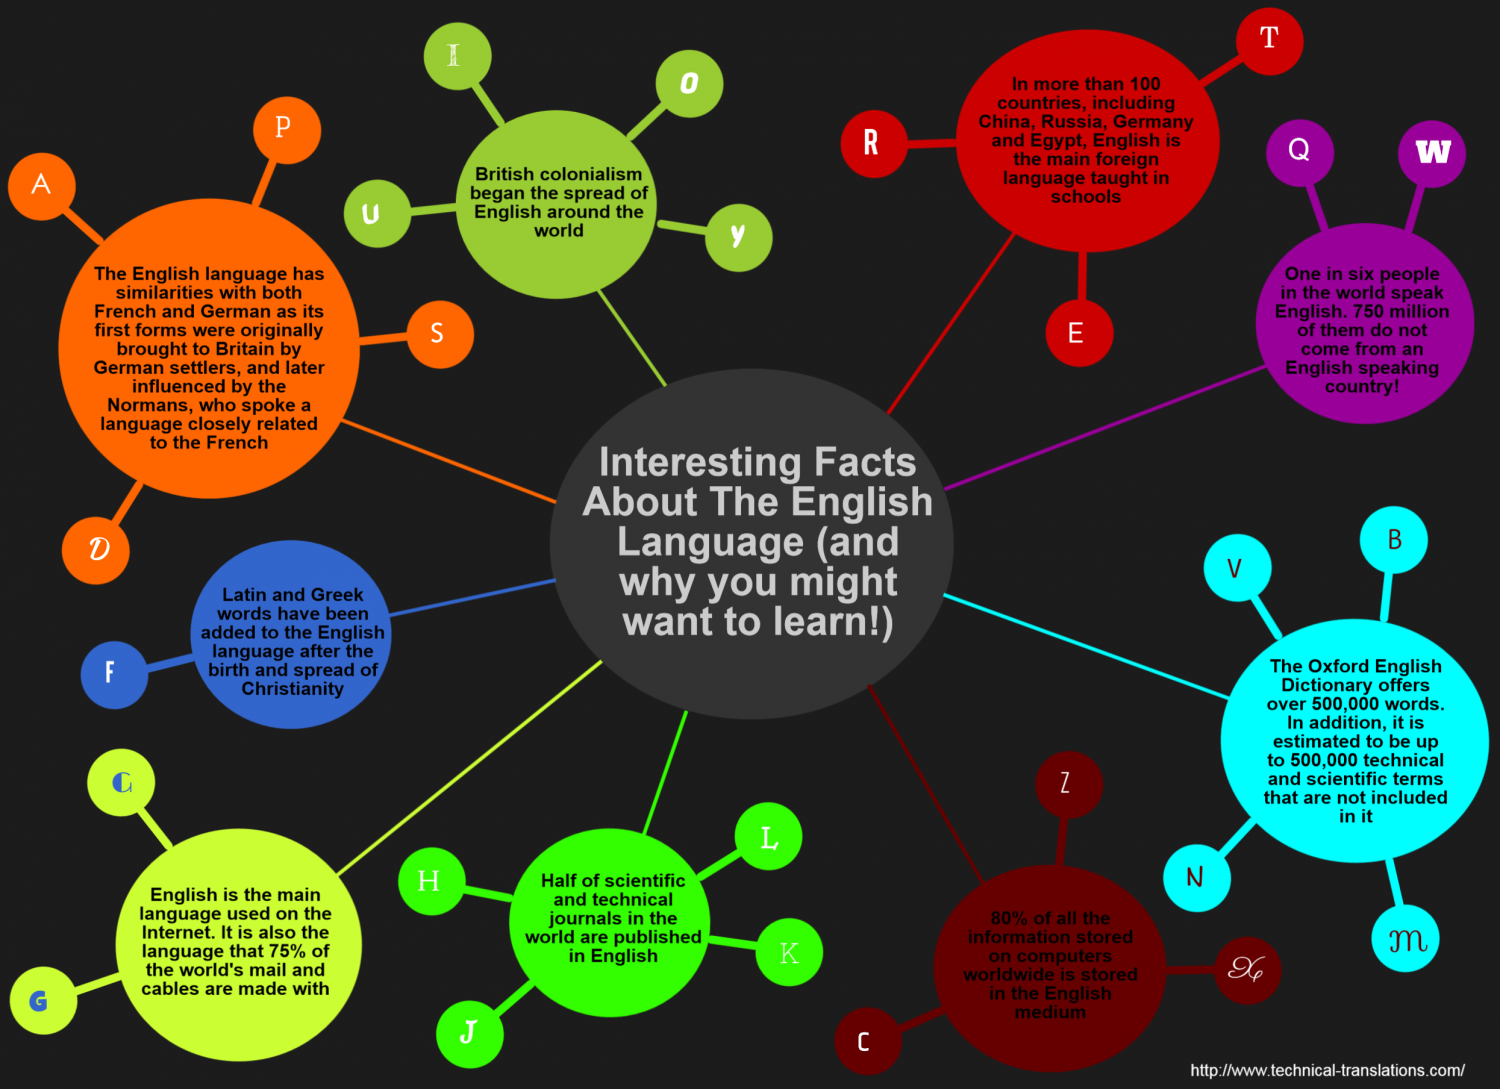 Interesting facts about the English language (and why you might want to learn!) Infographic